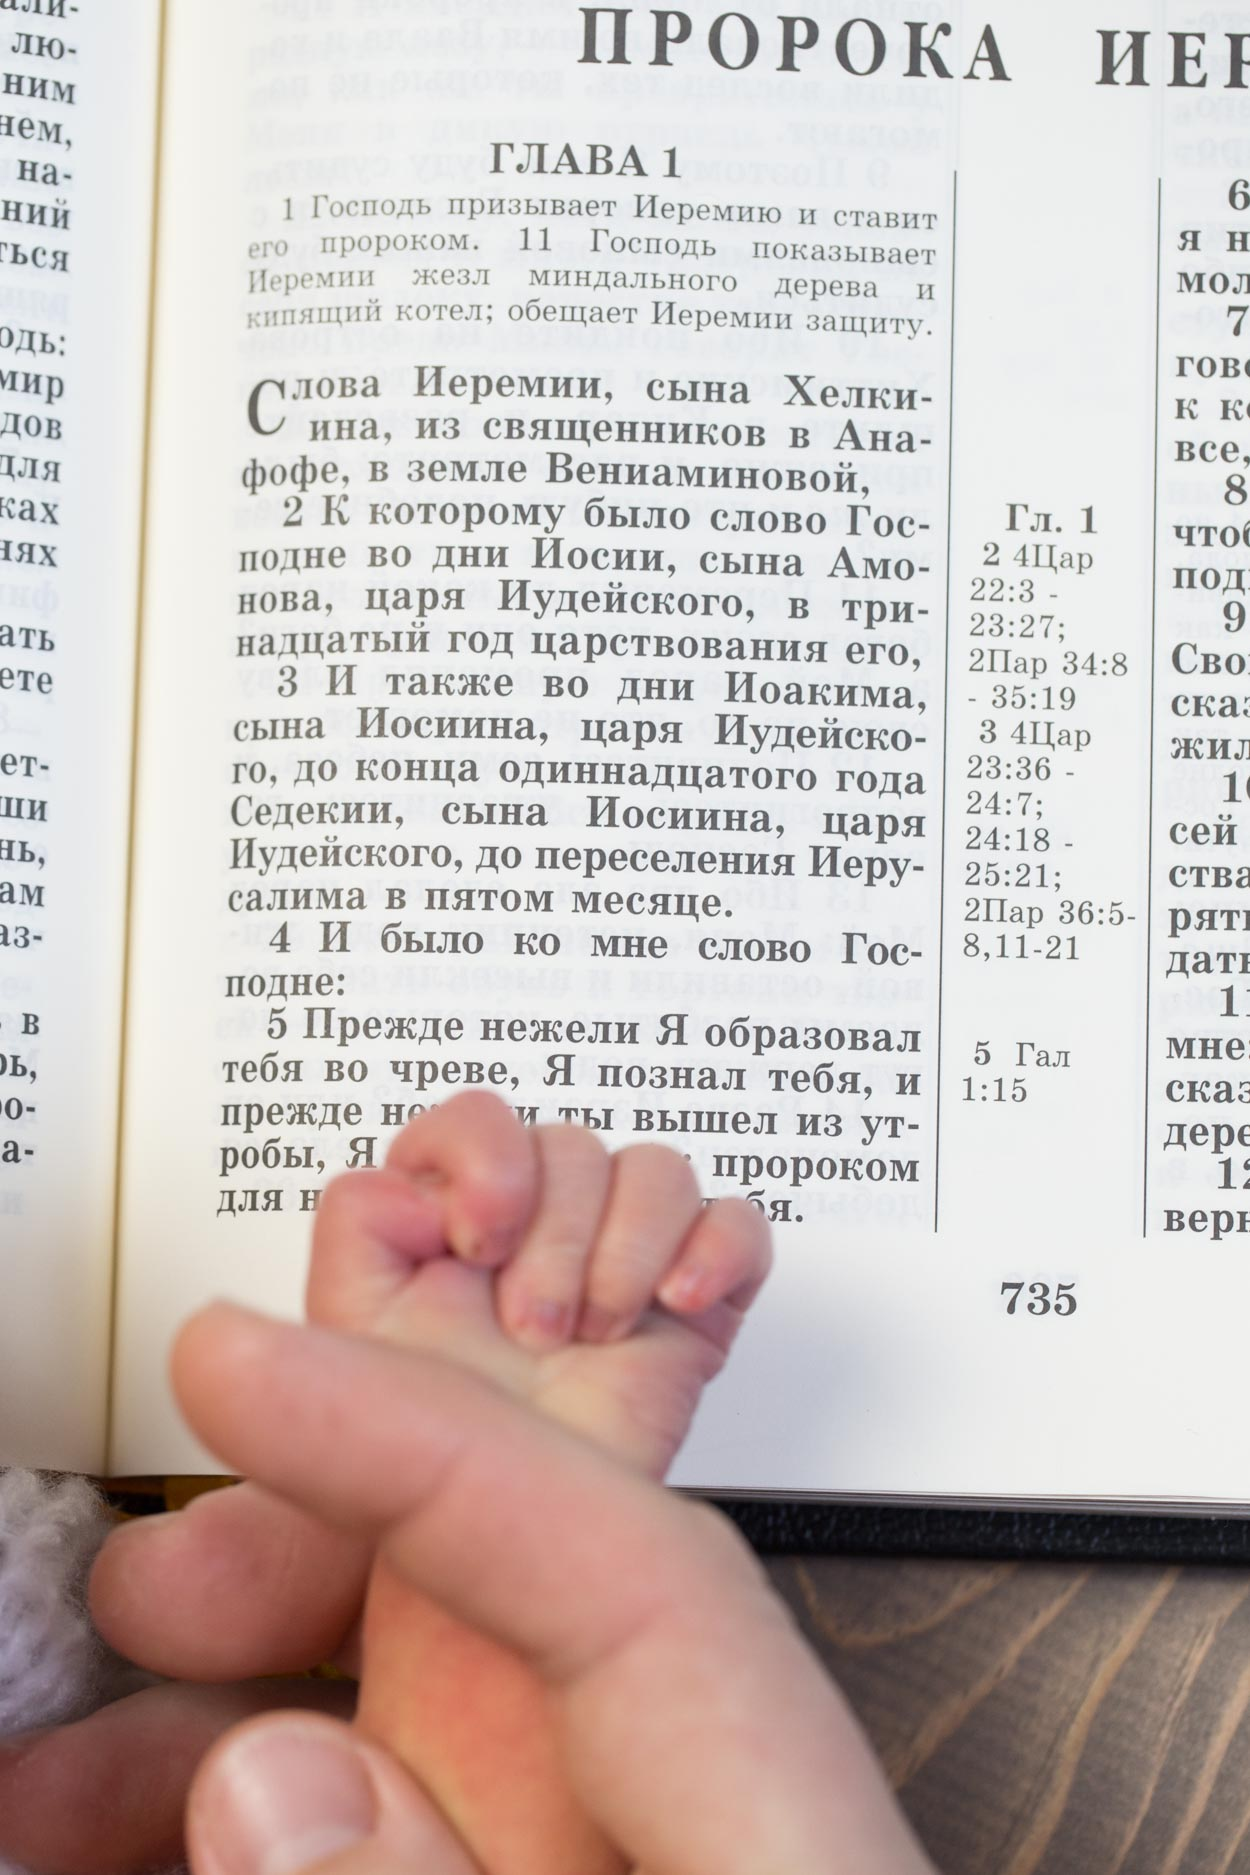 Baby hand held next to a bible.